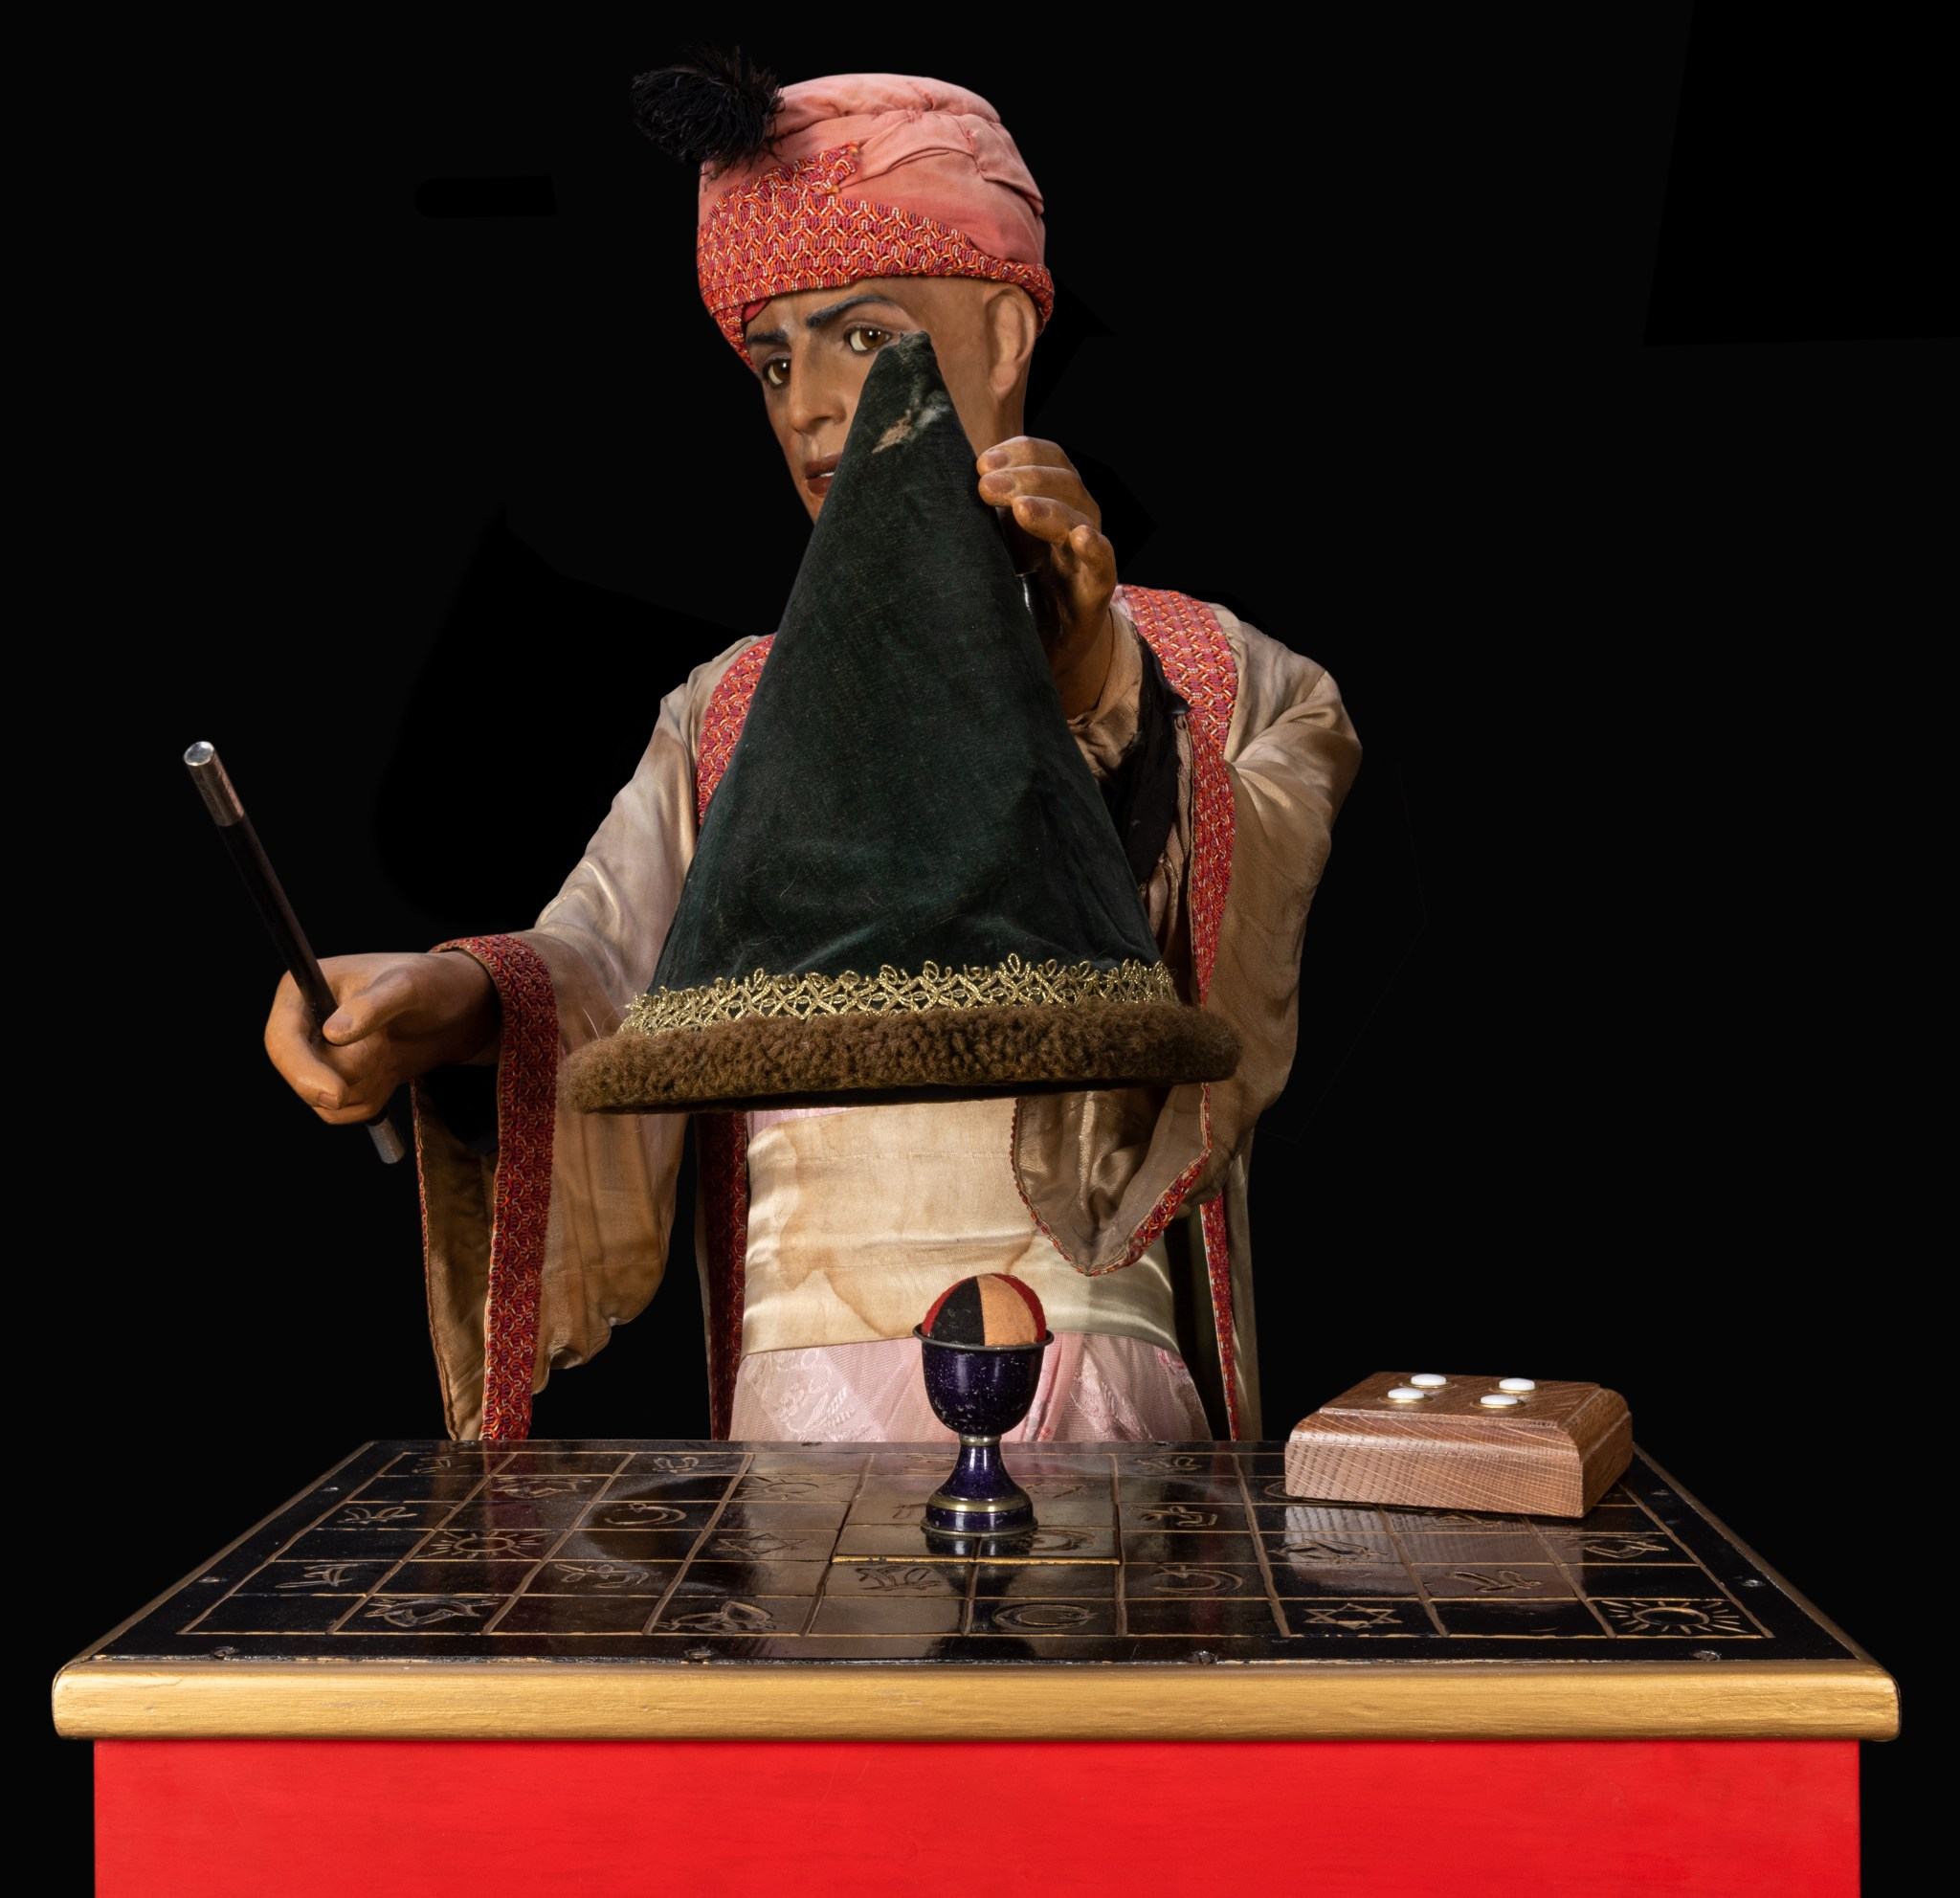 The magician automaton from Sleuth, shown lifting a wizard's cap.